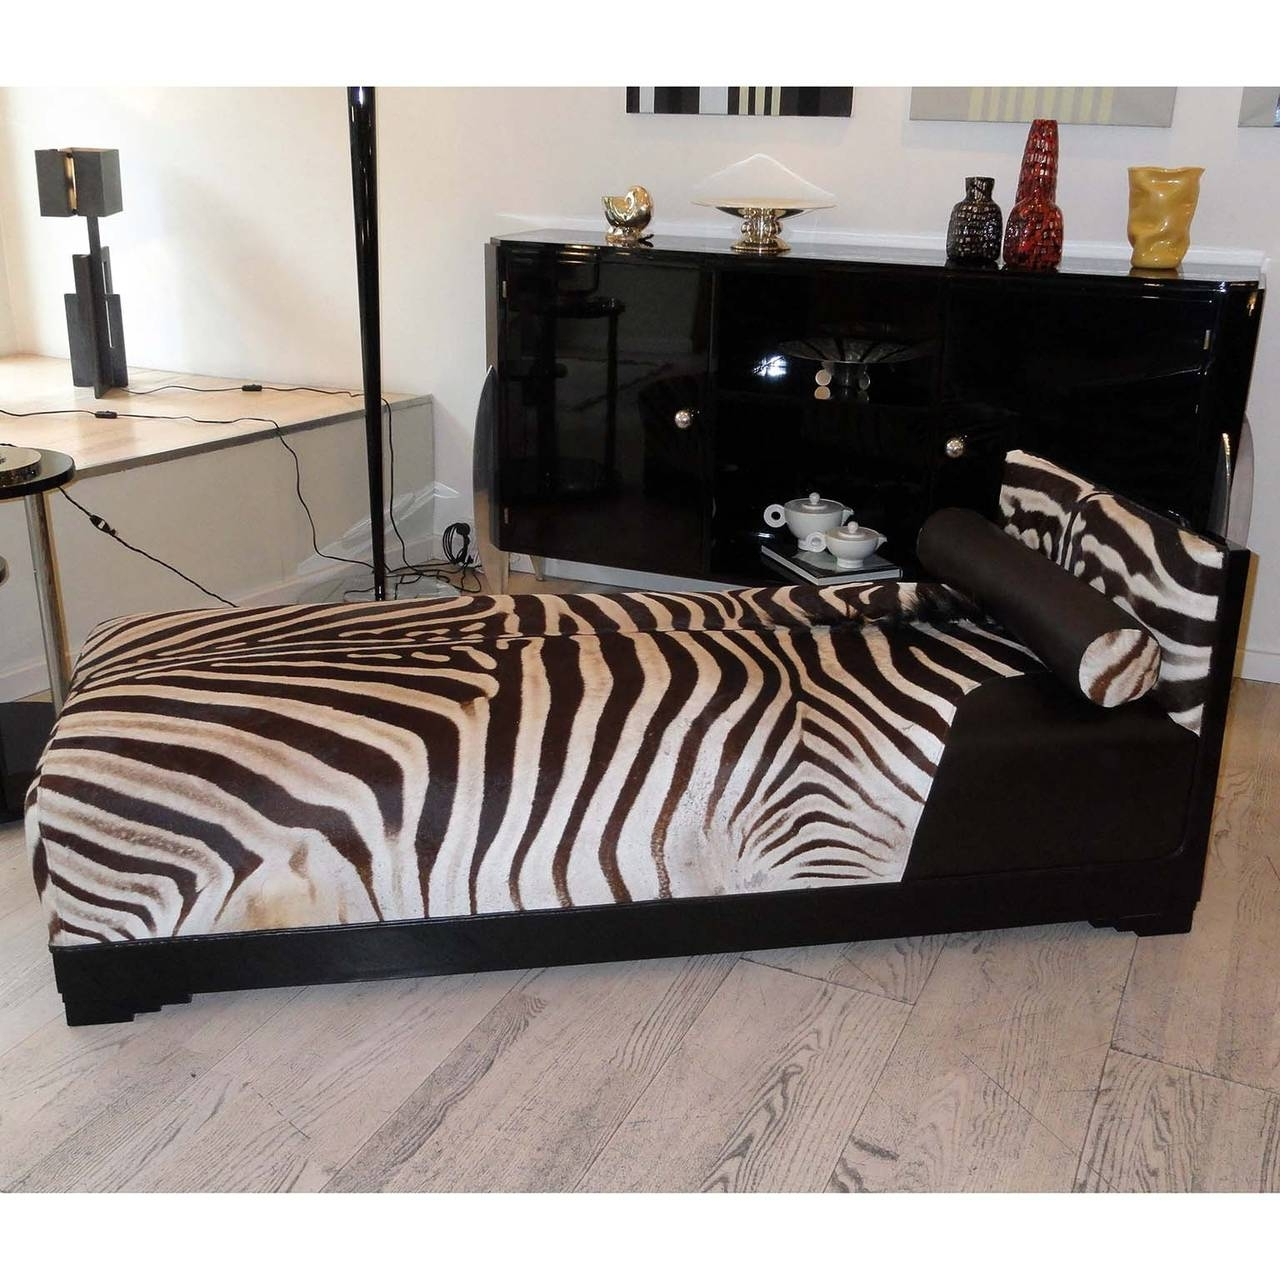 Exquisite Art Deco French Chaise Longue With Zebra Skin For Sale Intended For Newest Zebra Chaise Lounges (View 14 of 15)